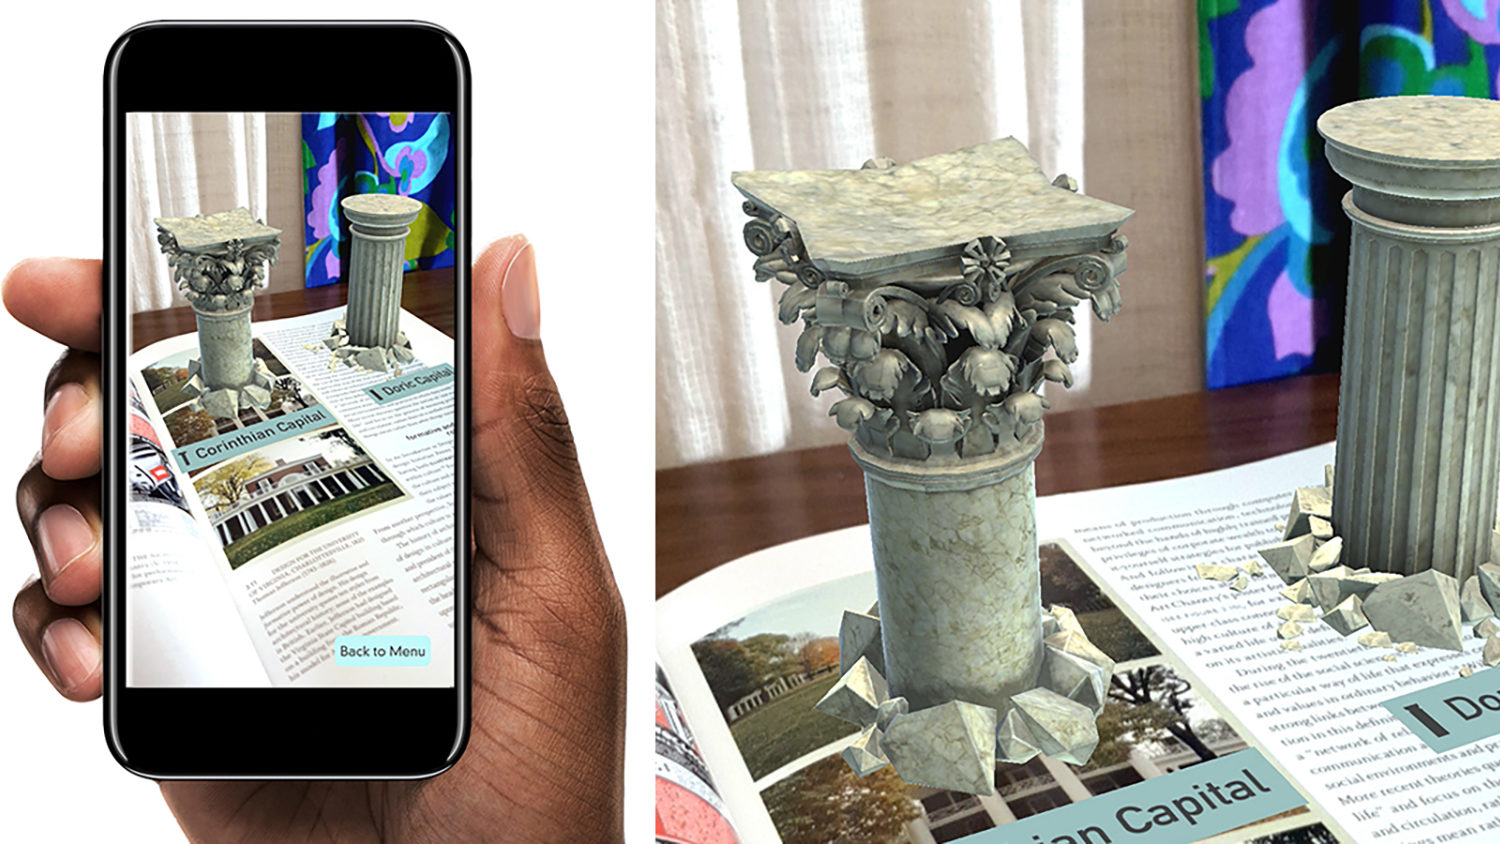 A view from the Graphic Design Theory augmented reality application.